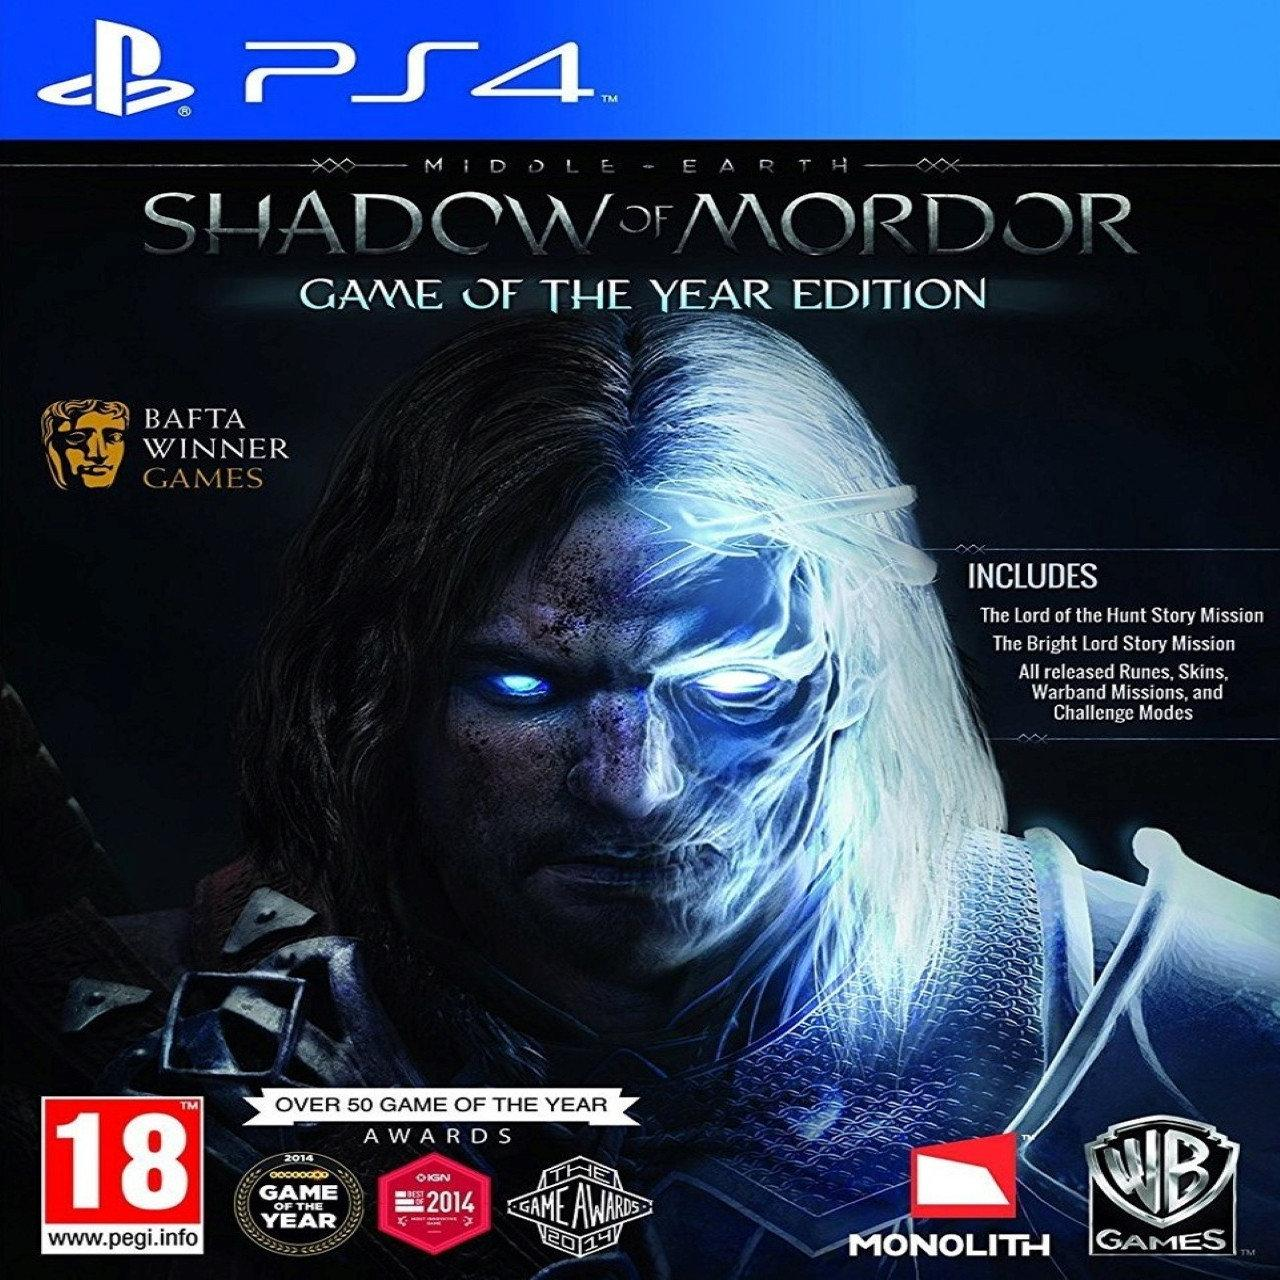 Middle-earth: Shadow of Mordor Game of the Year Edition RUS PS4 (Б\В)